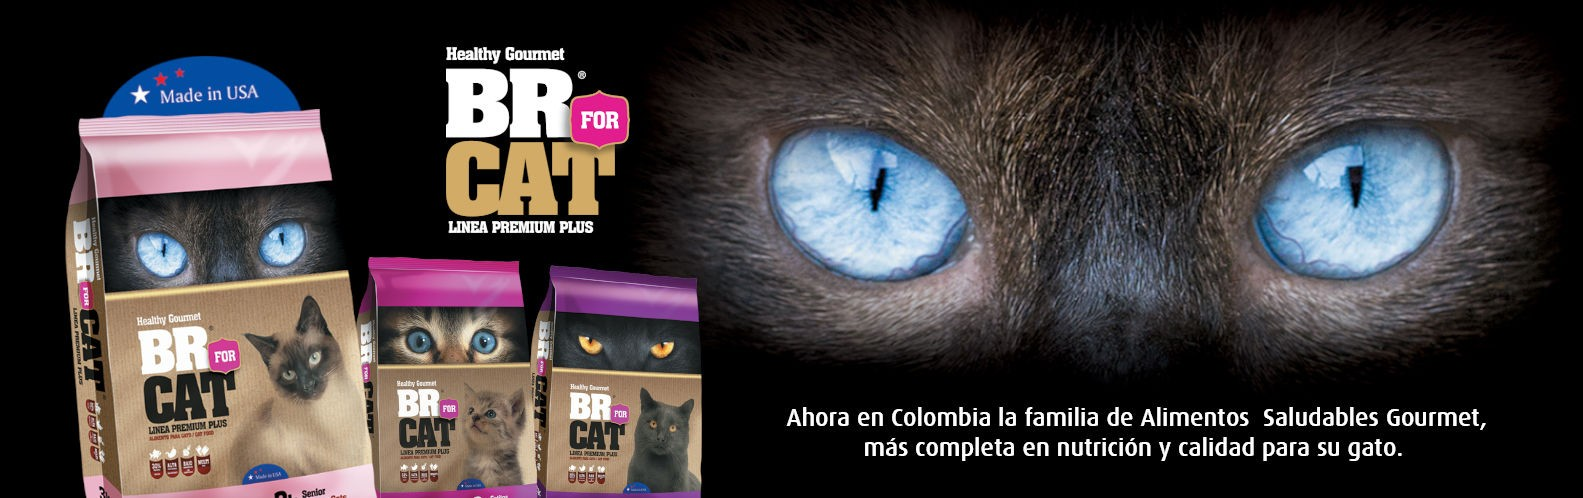 BR FOR CAT exiagricola